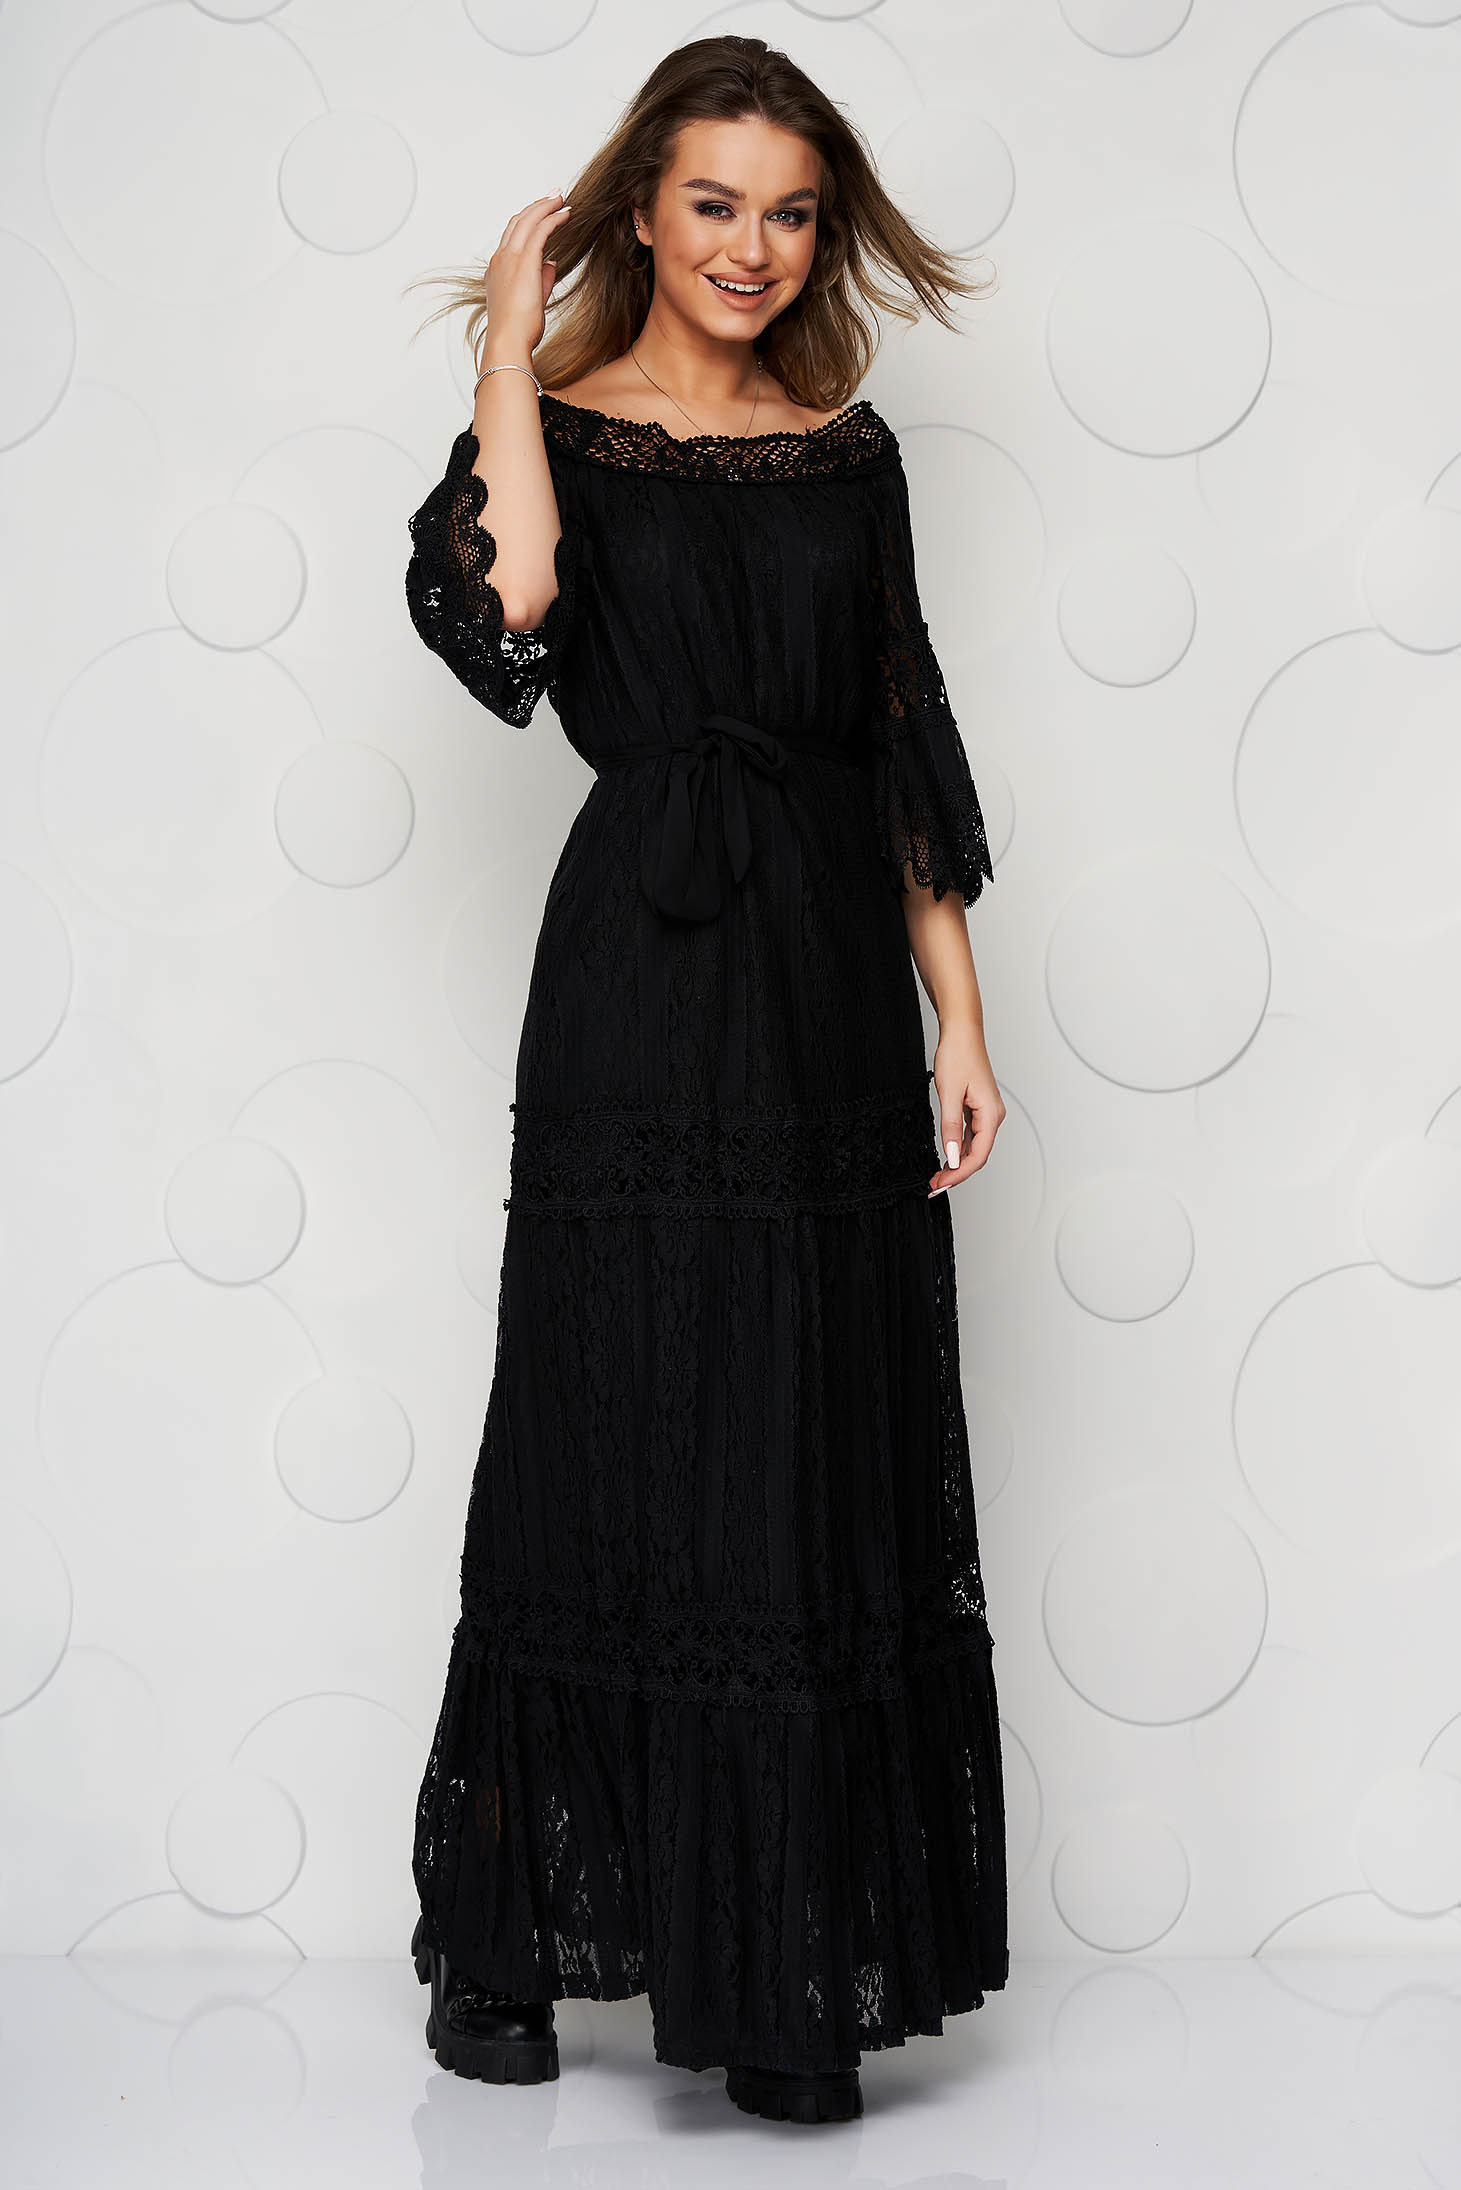 Black dress lace overlay loose fit long